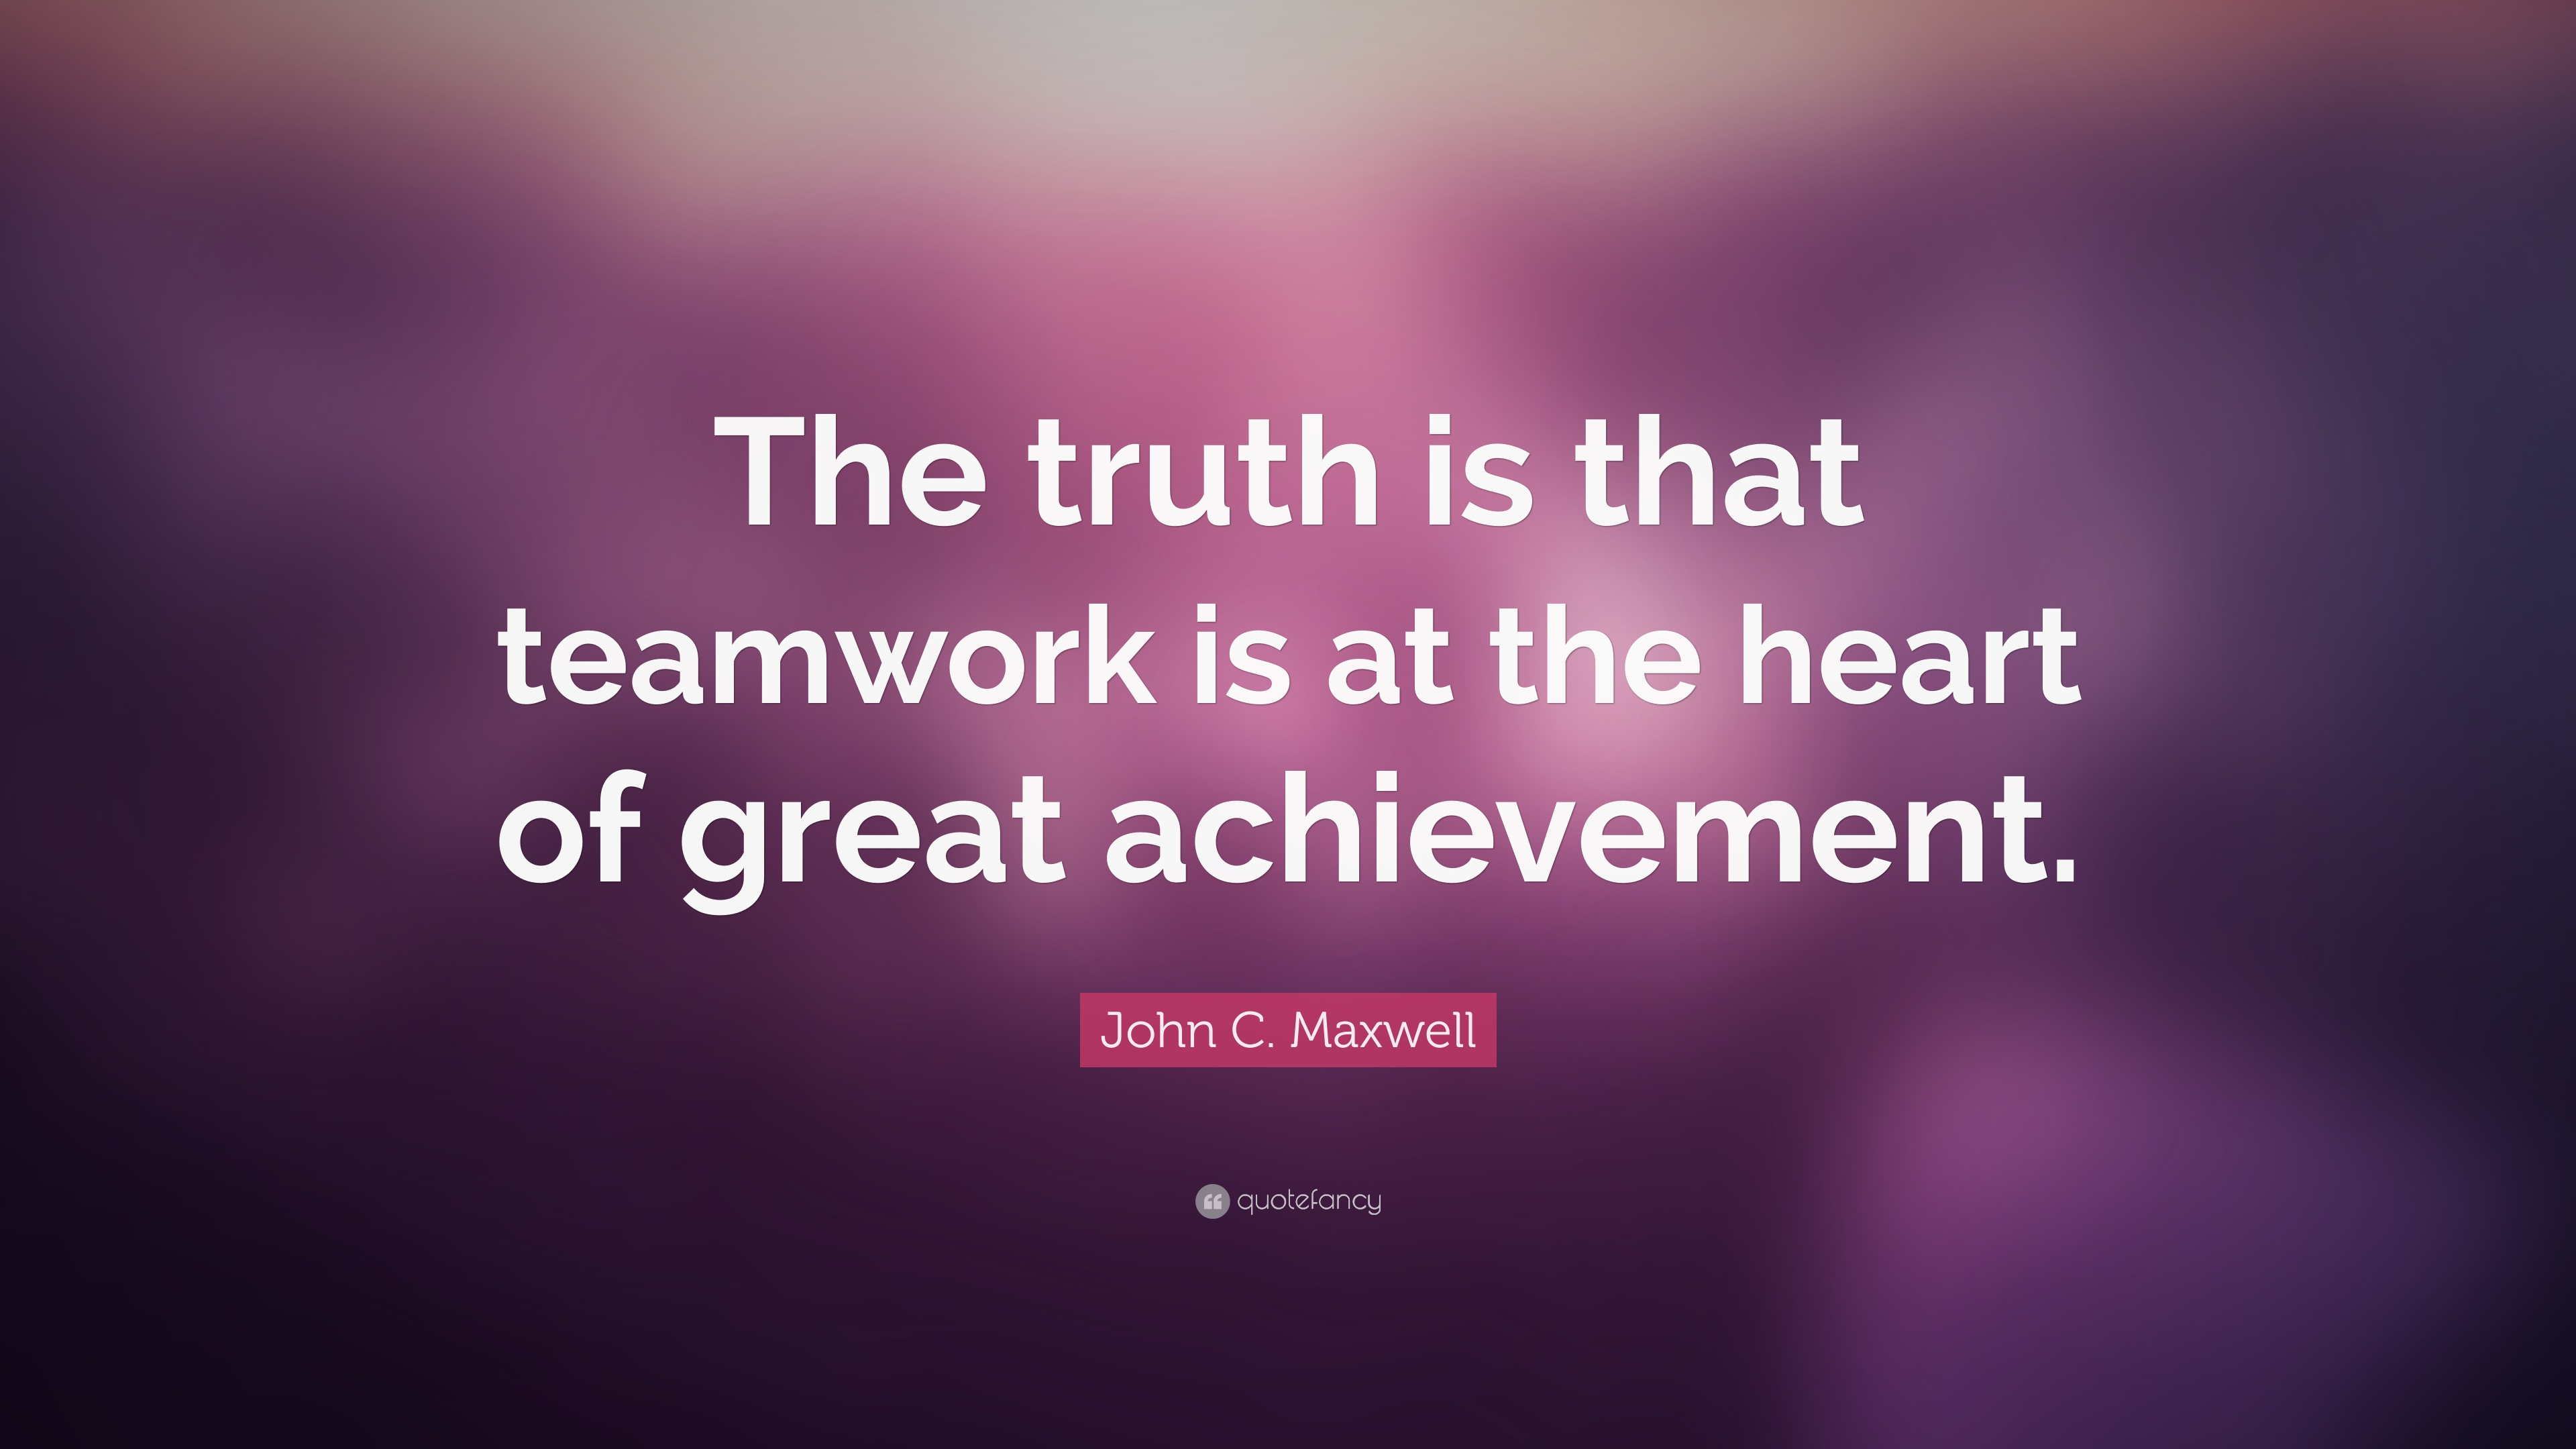 Inspirational Quotes About Teamwork Teamwork Quotes 40 Wallpapers  Quotefancy